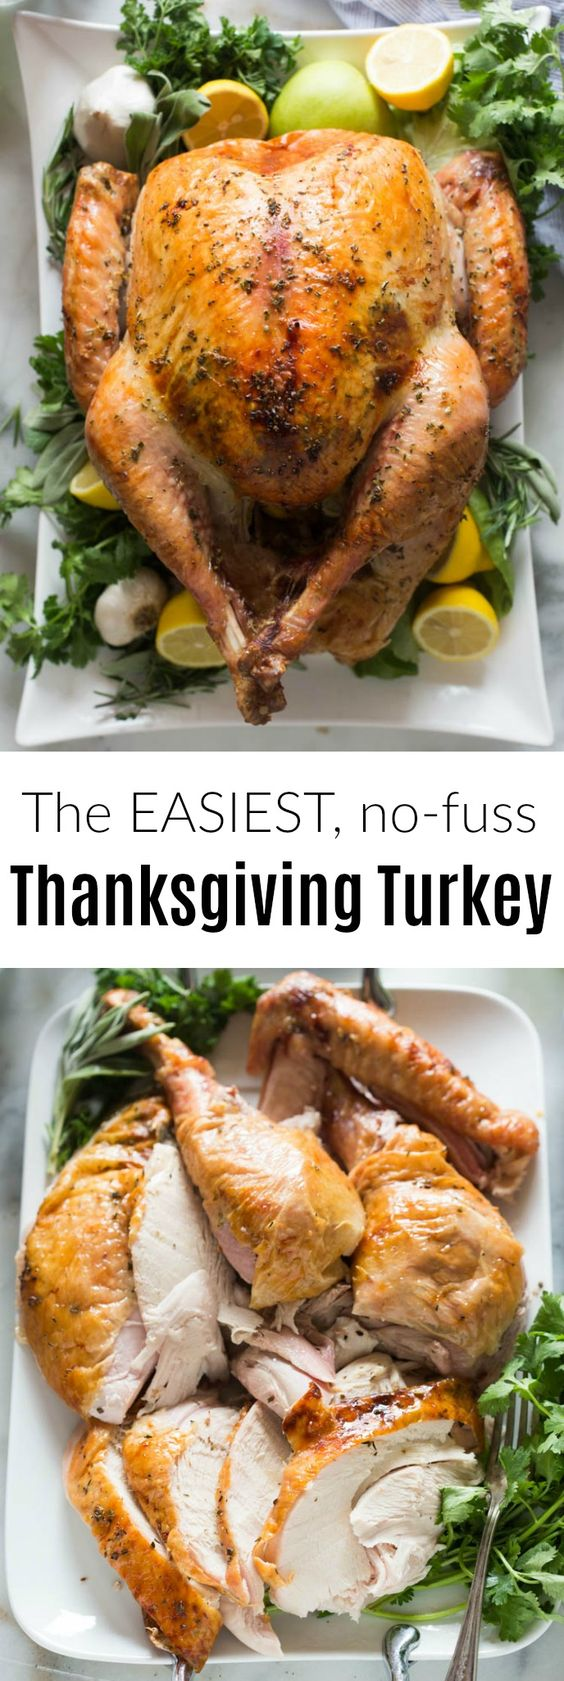 Thanksgiving turkey recipes: Easy No-fuss Thanksgiving Turkey